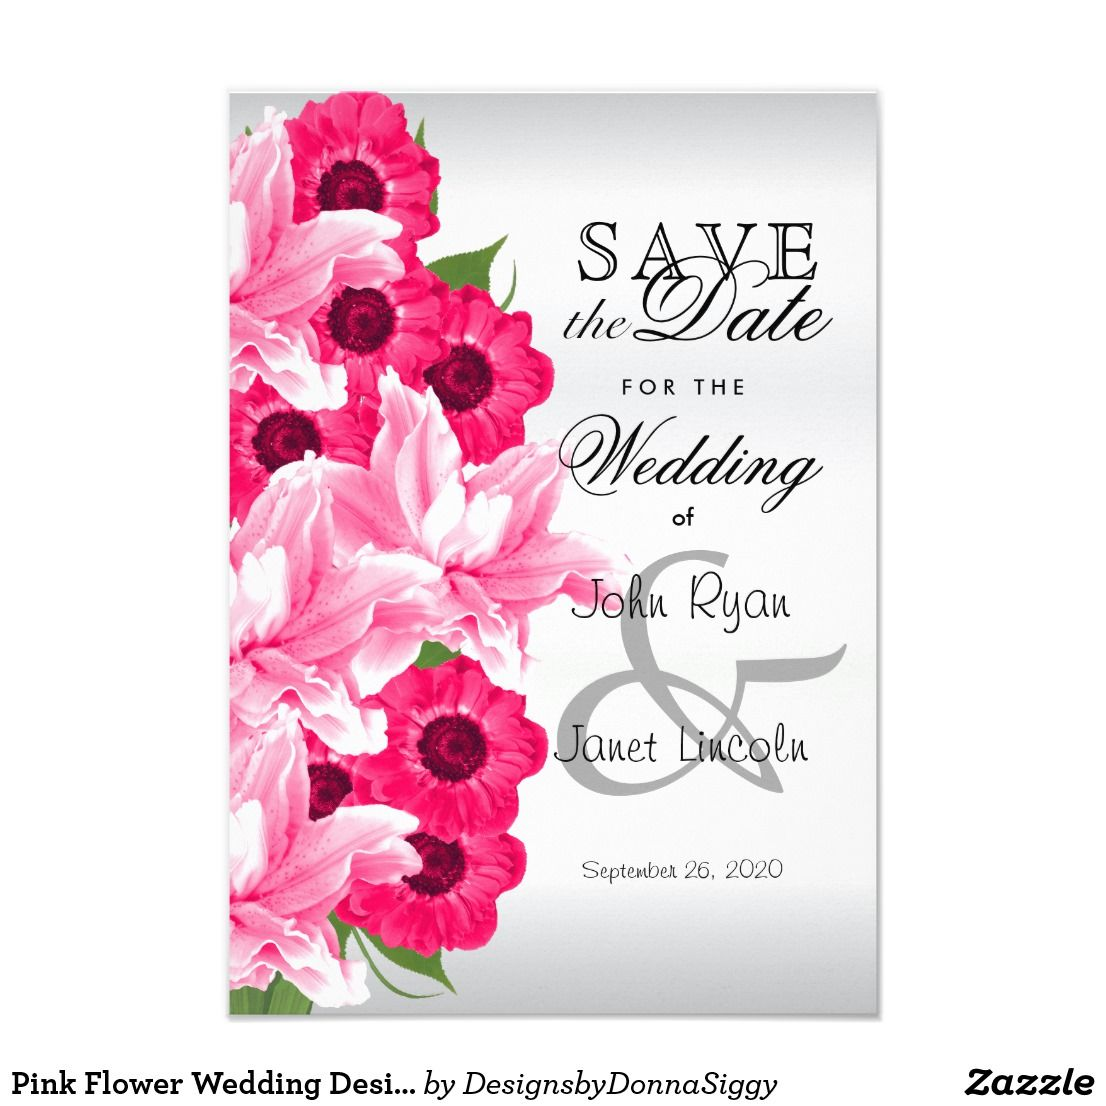 pink flower wedding design save the date support small